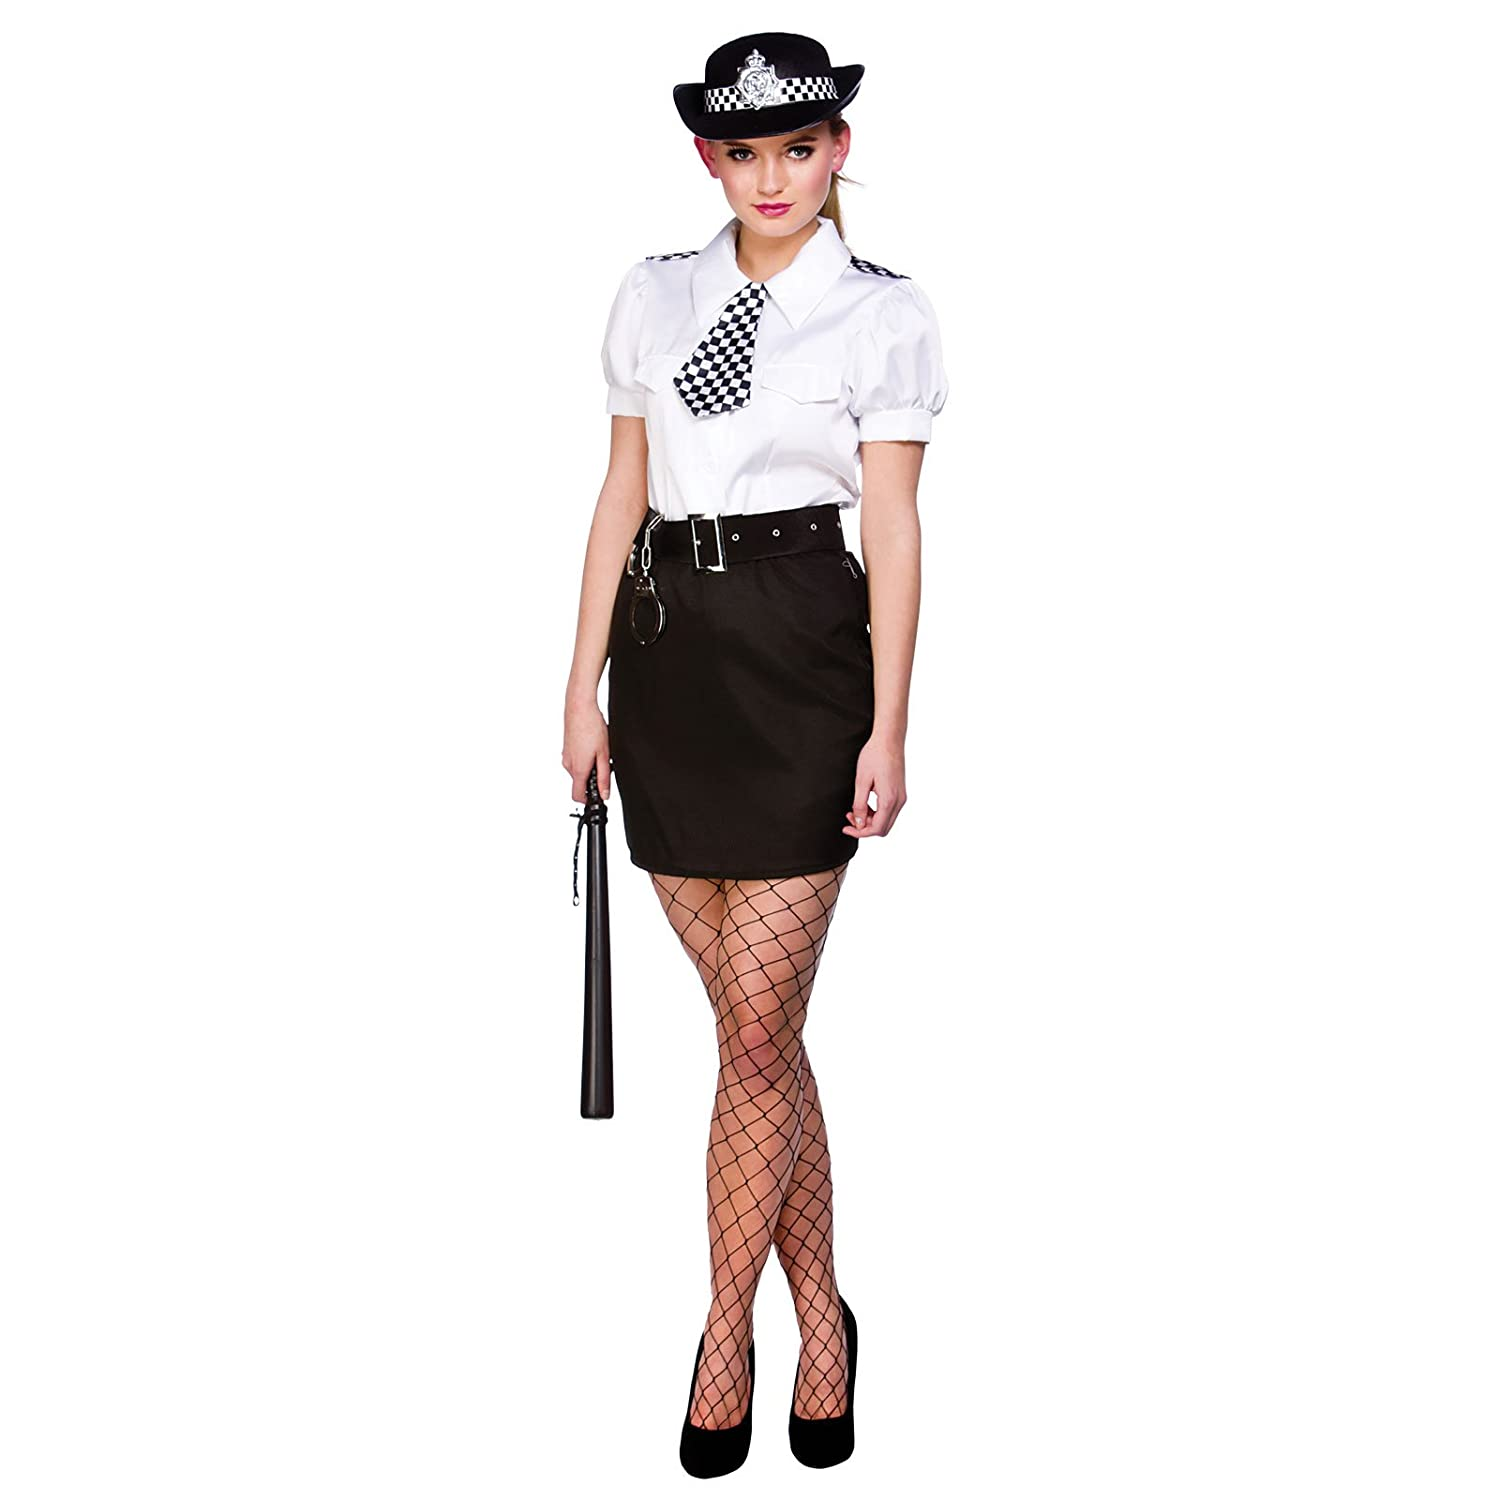 Adults Ladies Constable Cutie Costume for Policeman Police Cop Fancy Dress Amazon.co.uk Toys u0026 Games  sc 1 st  Amazon UK & Adults Ladies Constable Cutie Costume for Policeman Police Cop Fancy ...